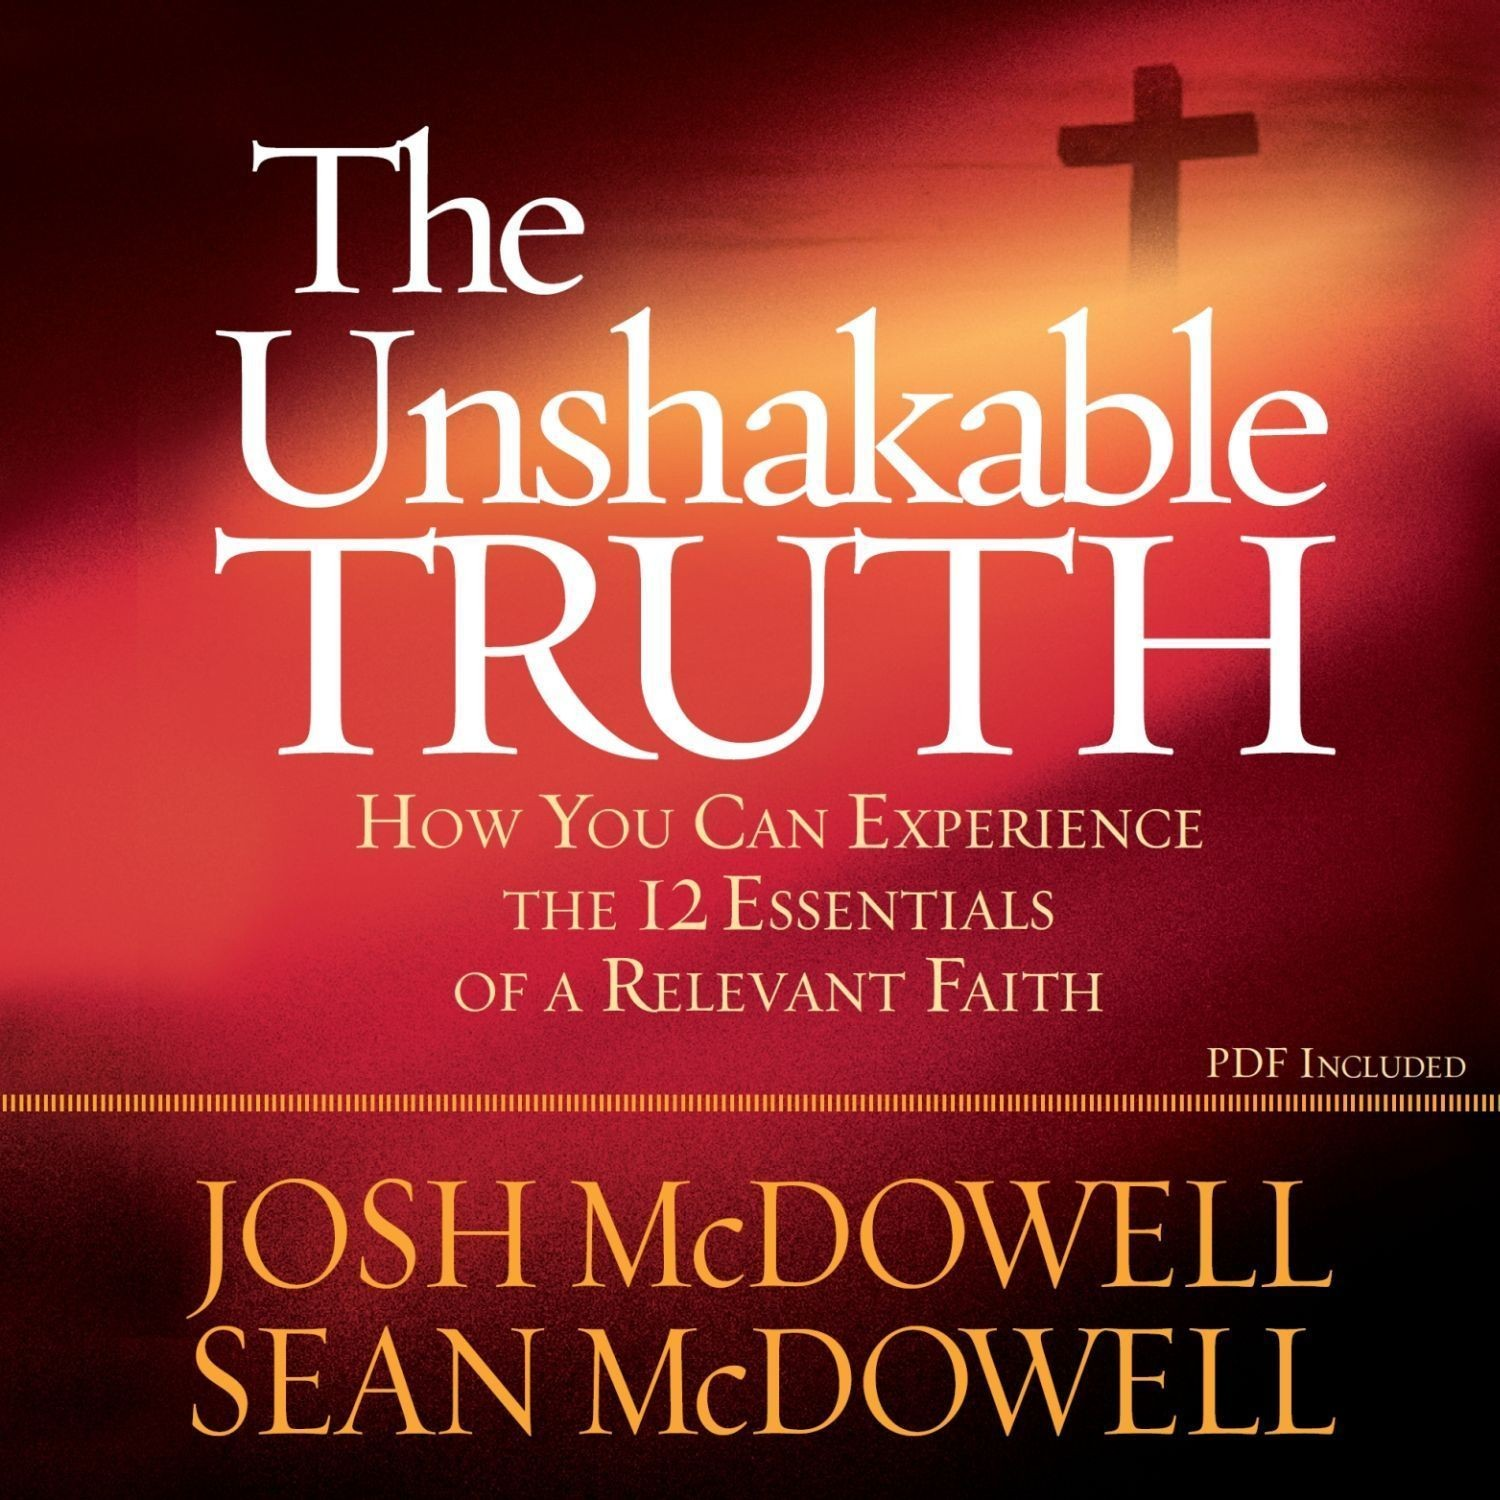 The Unshakable Truth: How You Can Experience the 12 Essentials of a Relevant Faith Audiobook, by Josh McDowell